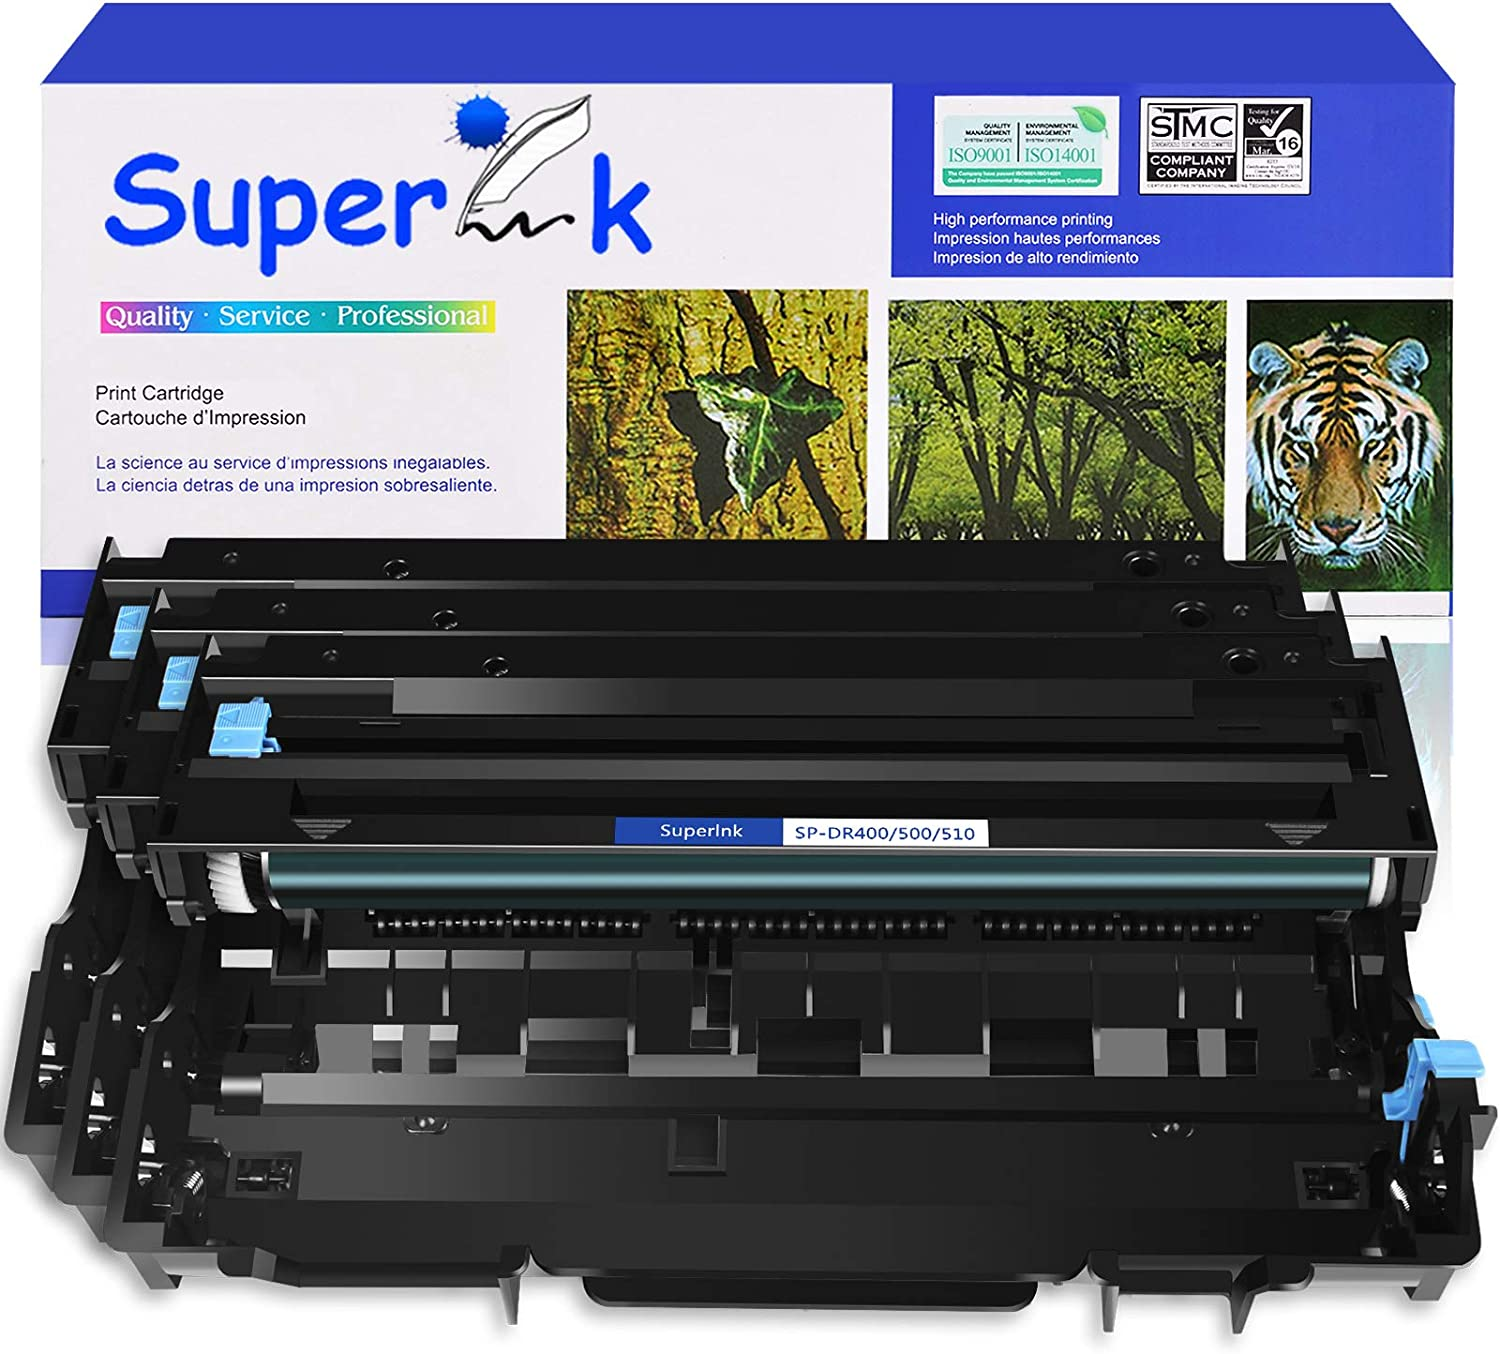 USUPERINK Compatible Drum Unit Replacement for DR510 Some reservation Brother Max 47% OFF DR-